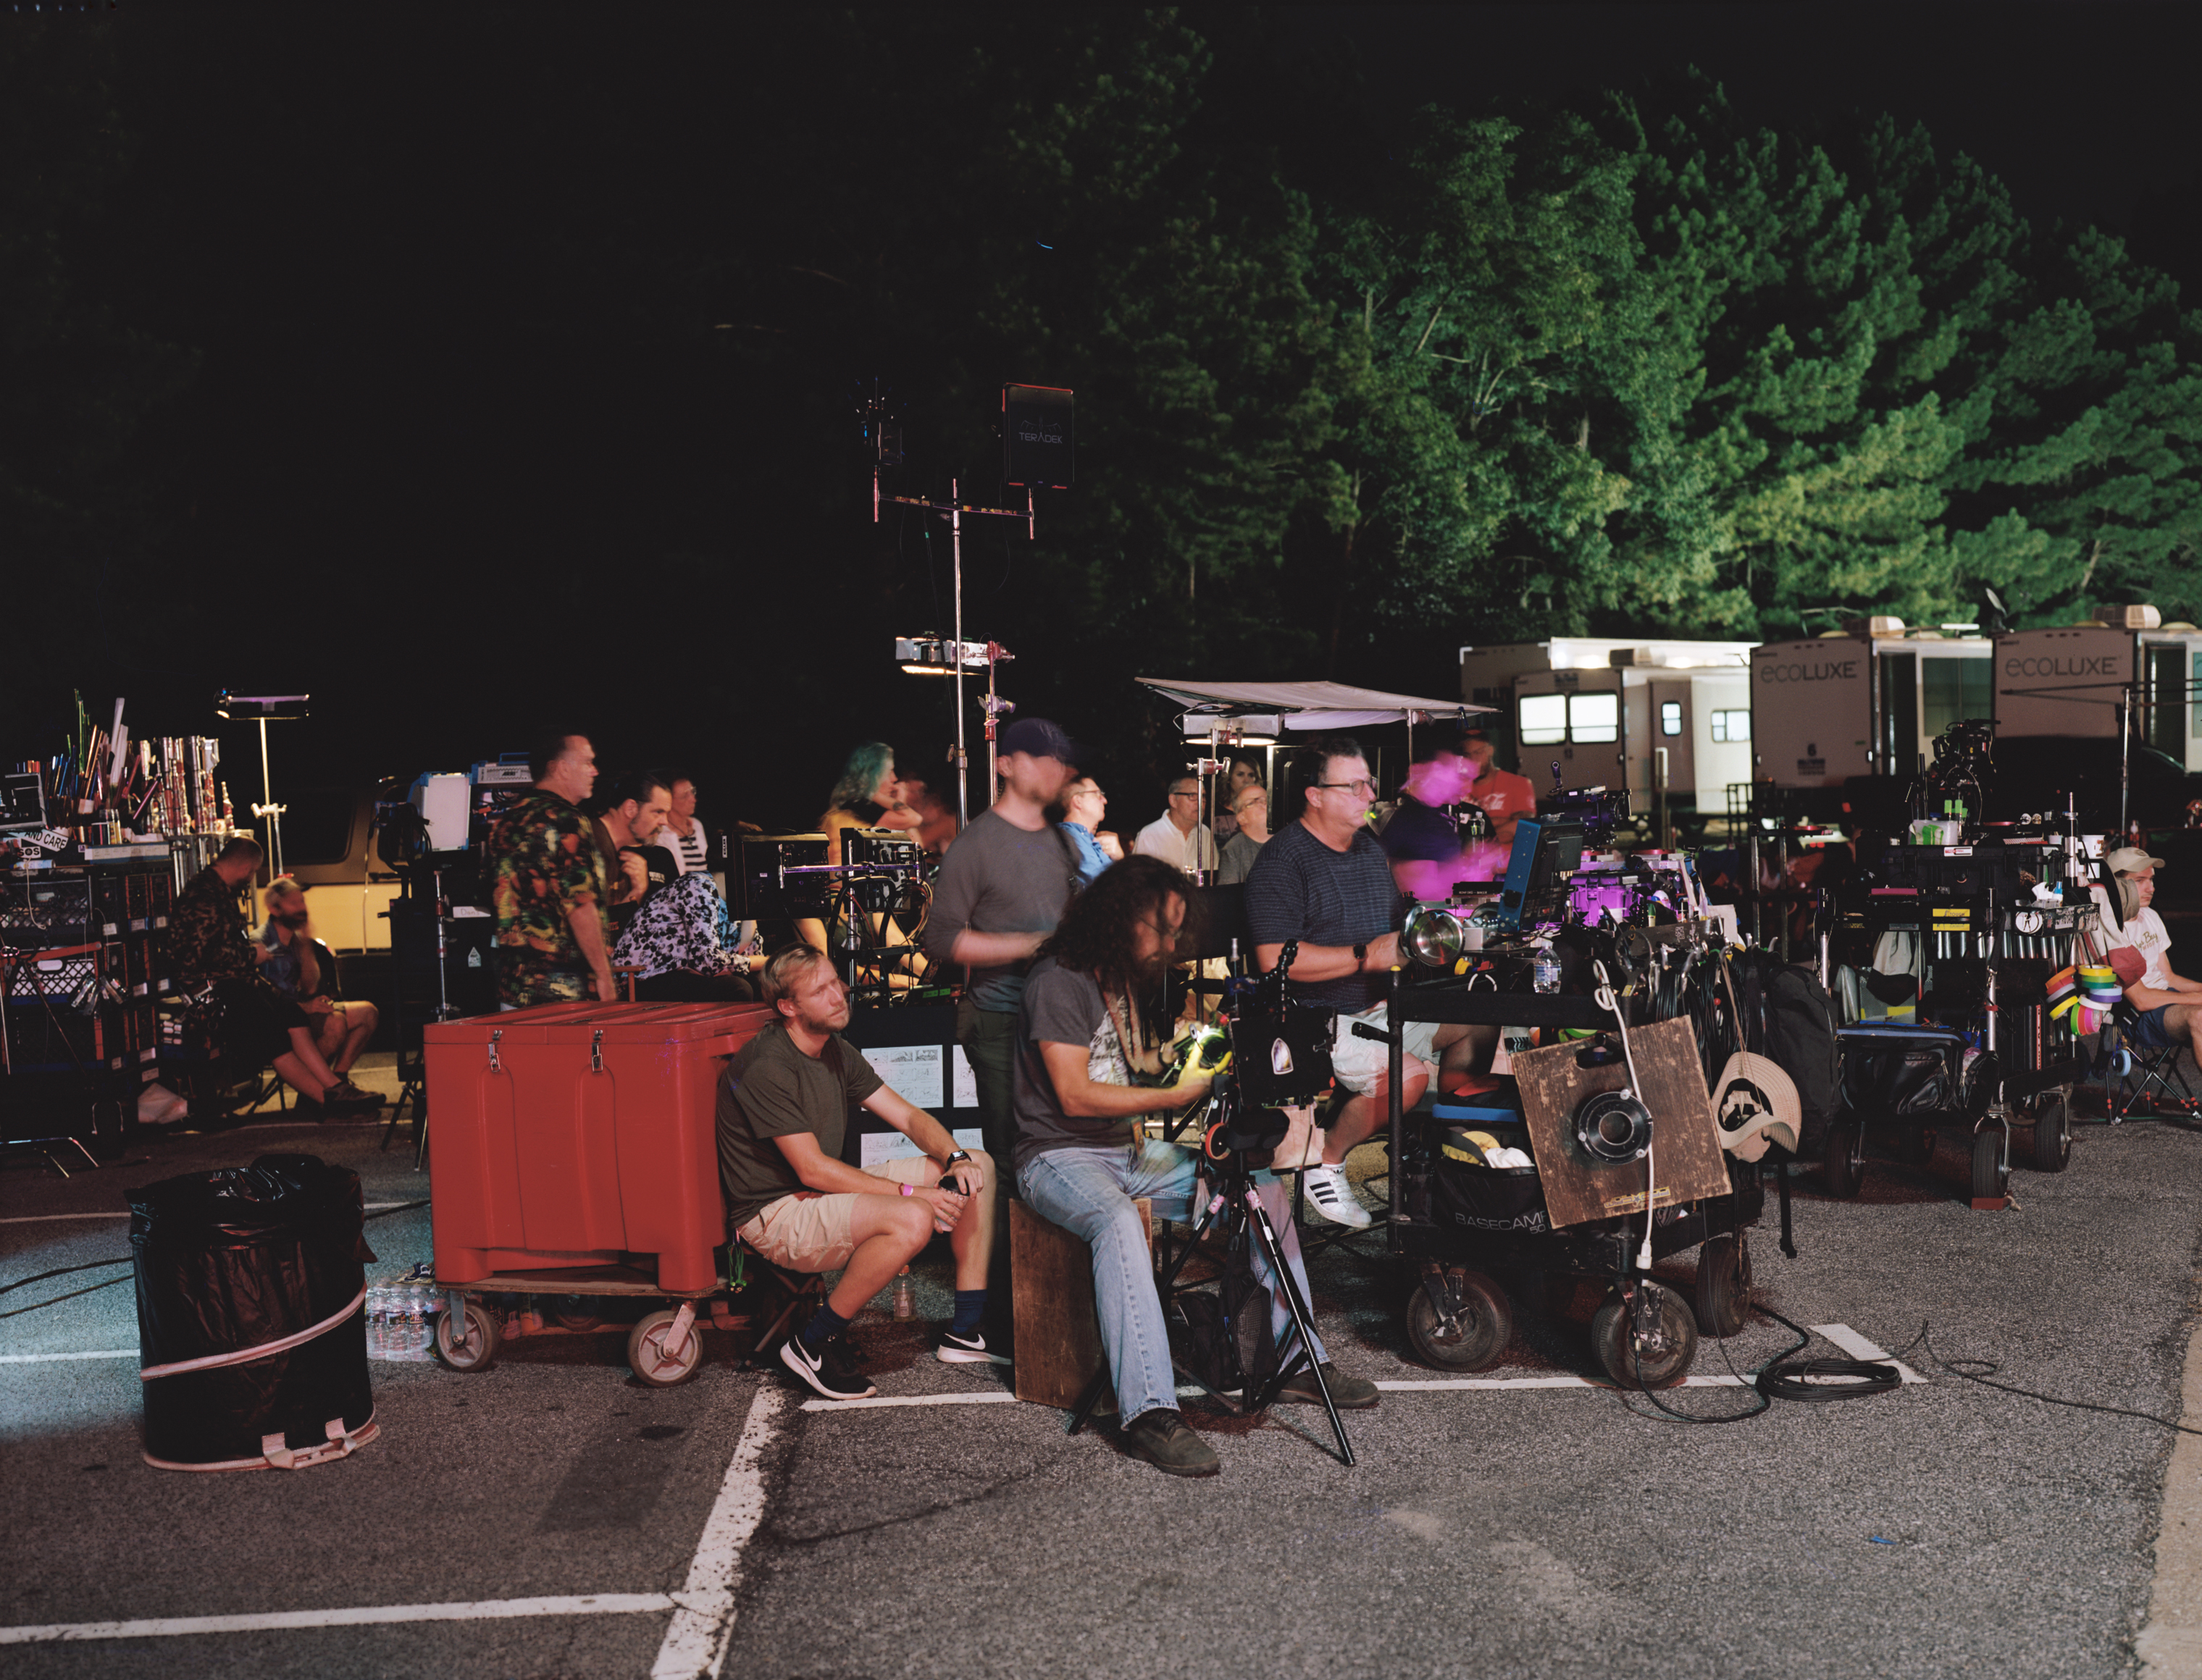 The crew prepares to film a scene on the set of Netflix's 'Stranger Things' season 3 on location in Georgia.